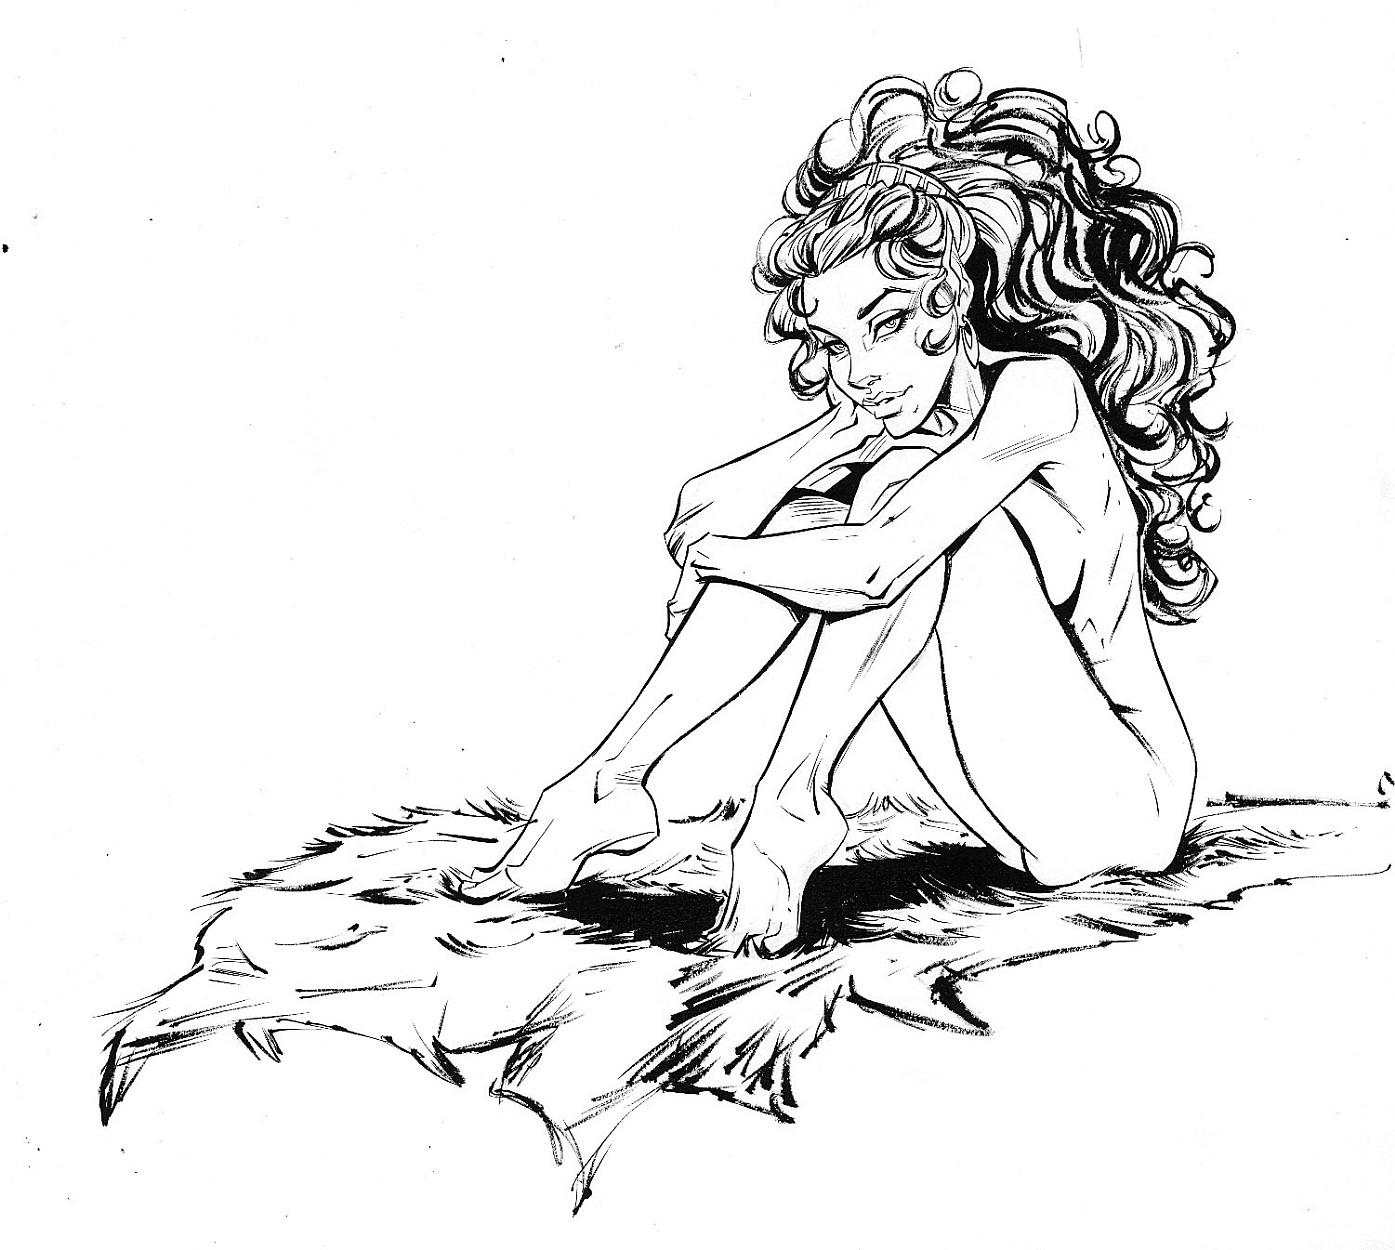 Elfquest sex images gallery